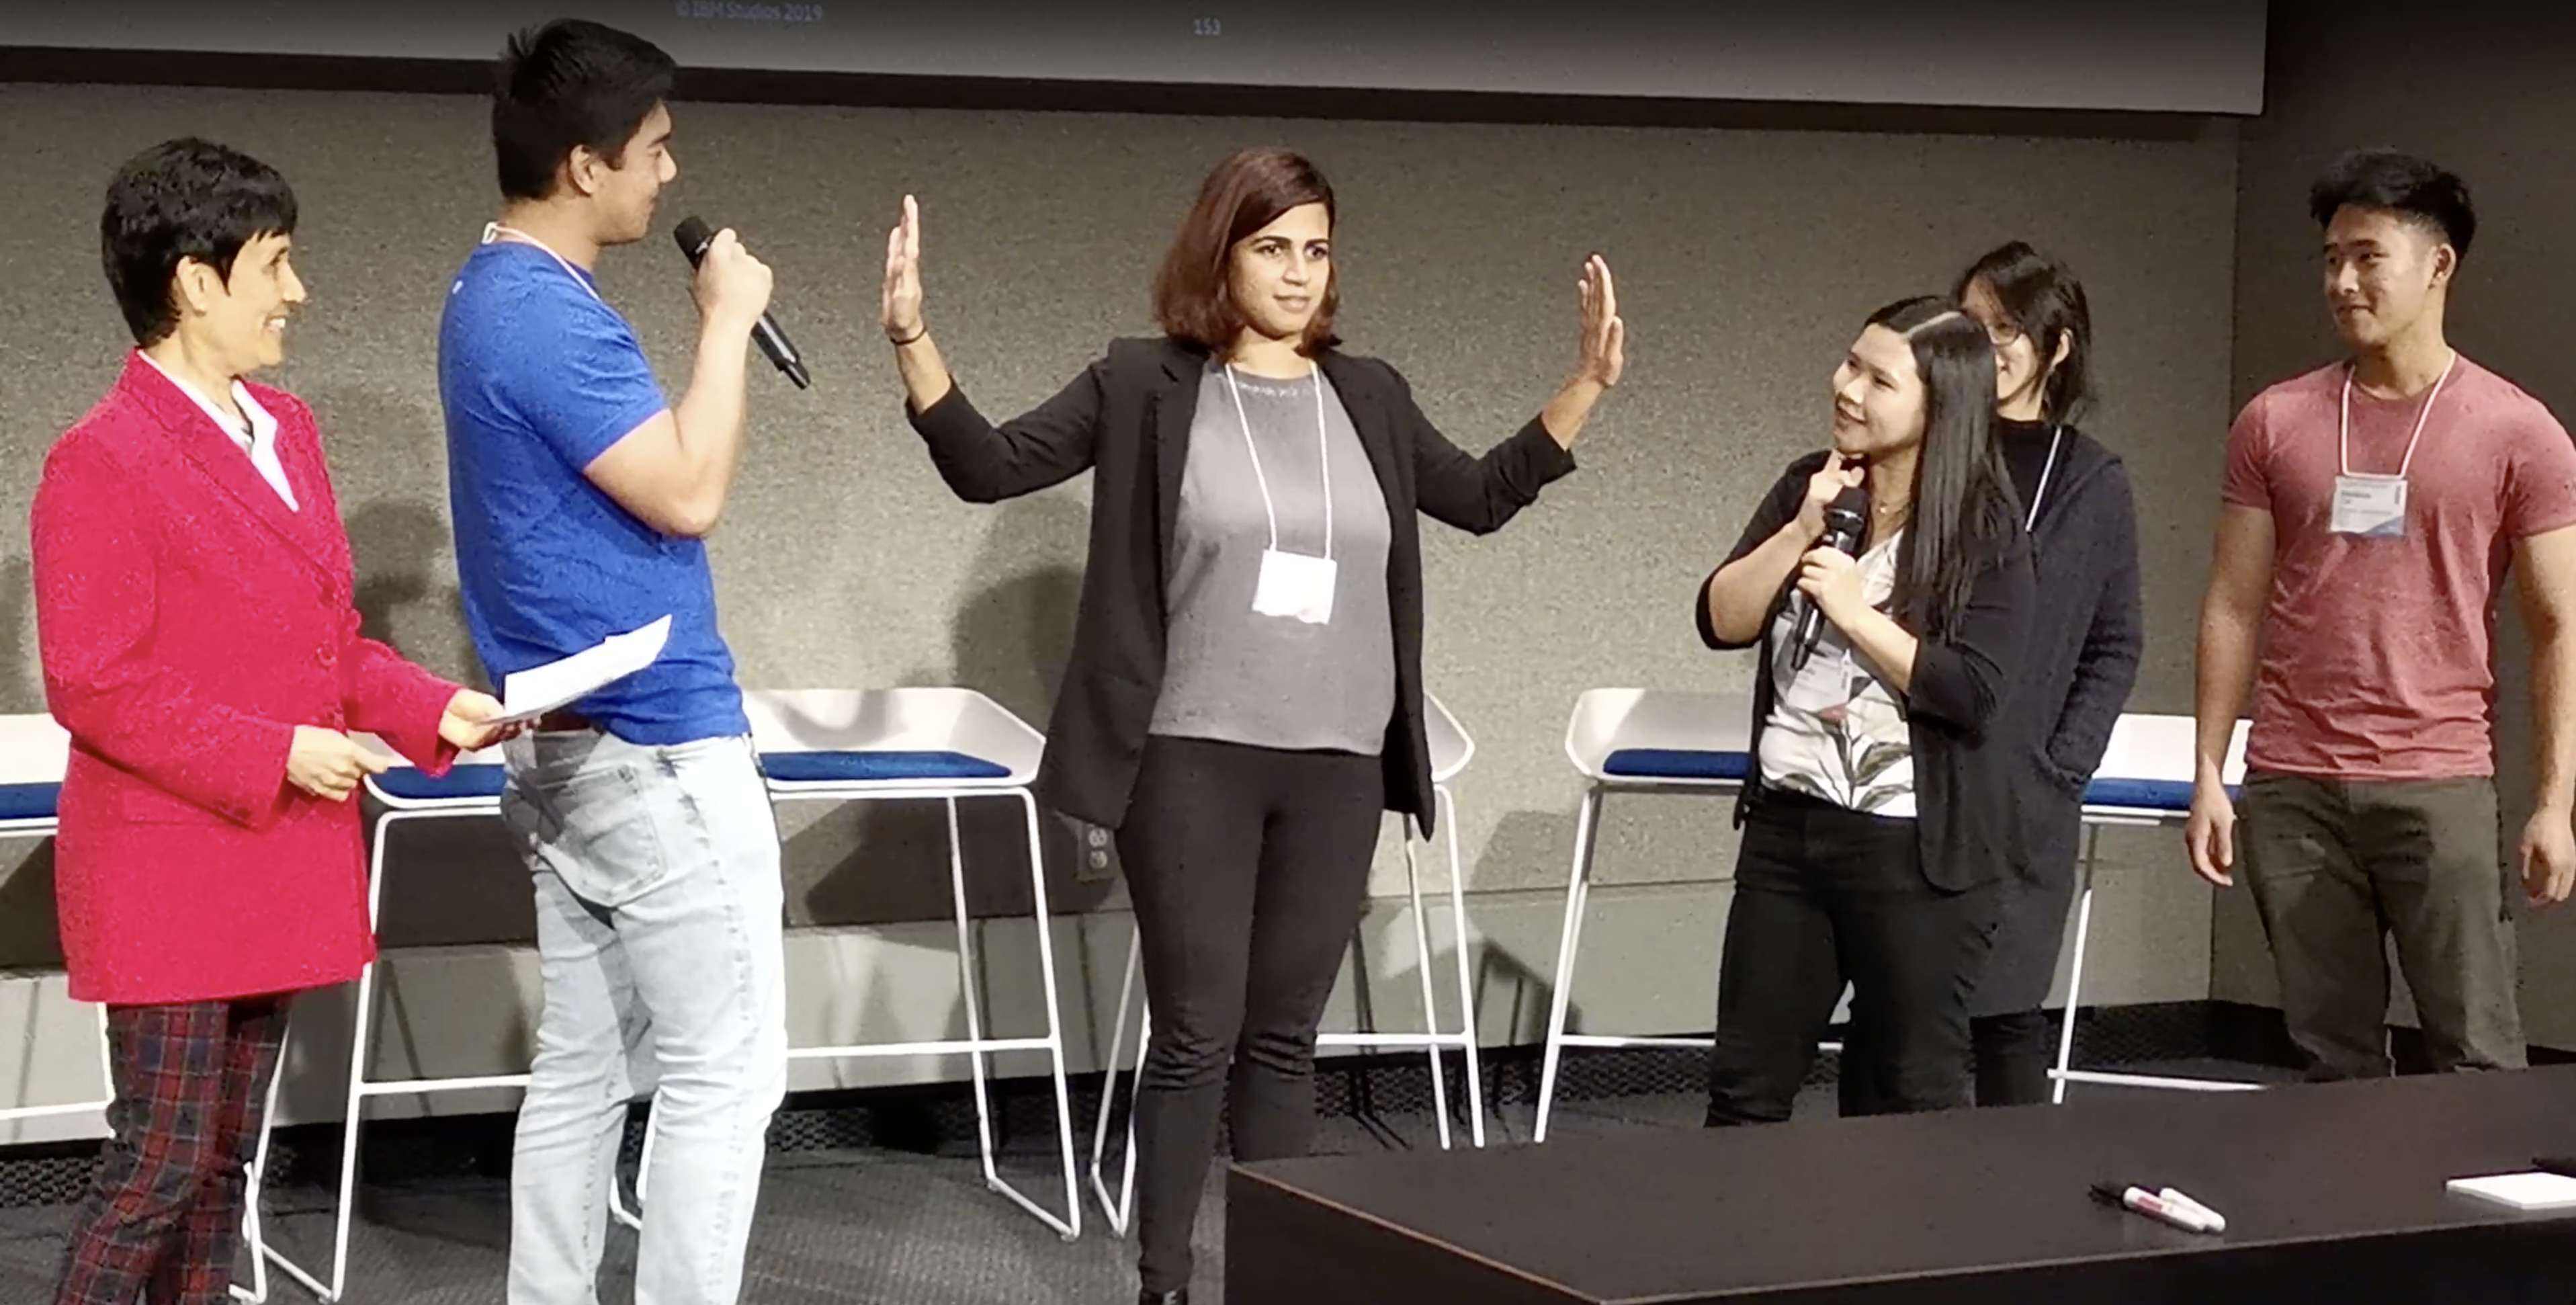 This is an image of our team presenting our final story on stage as a skit to the rest of the conference.